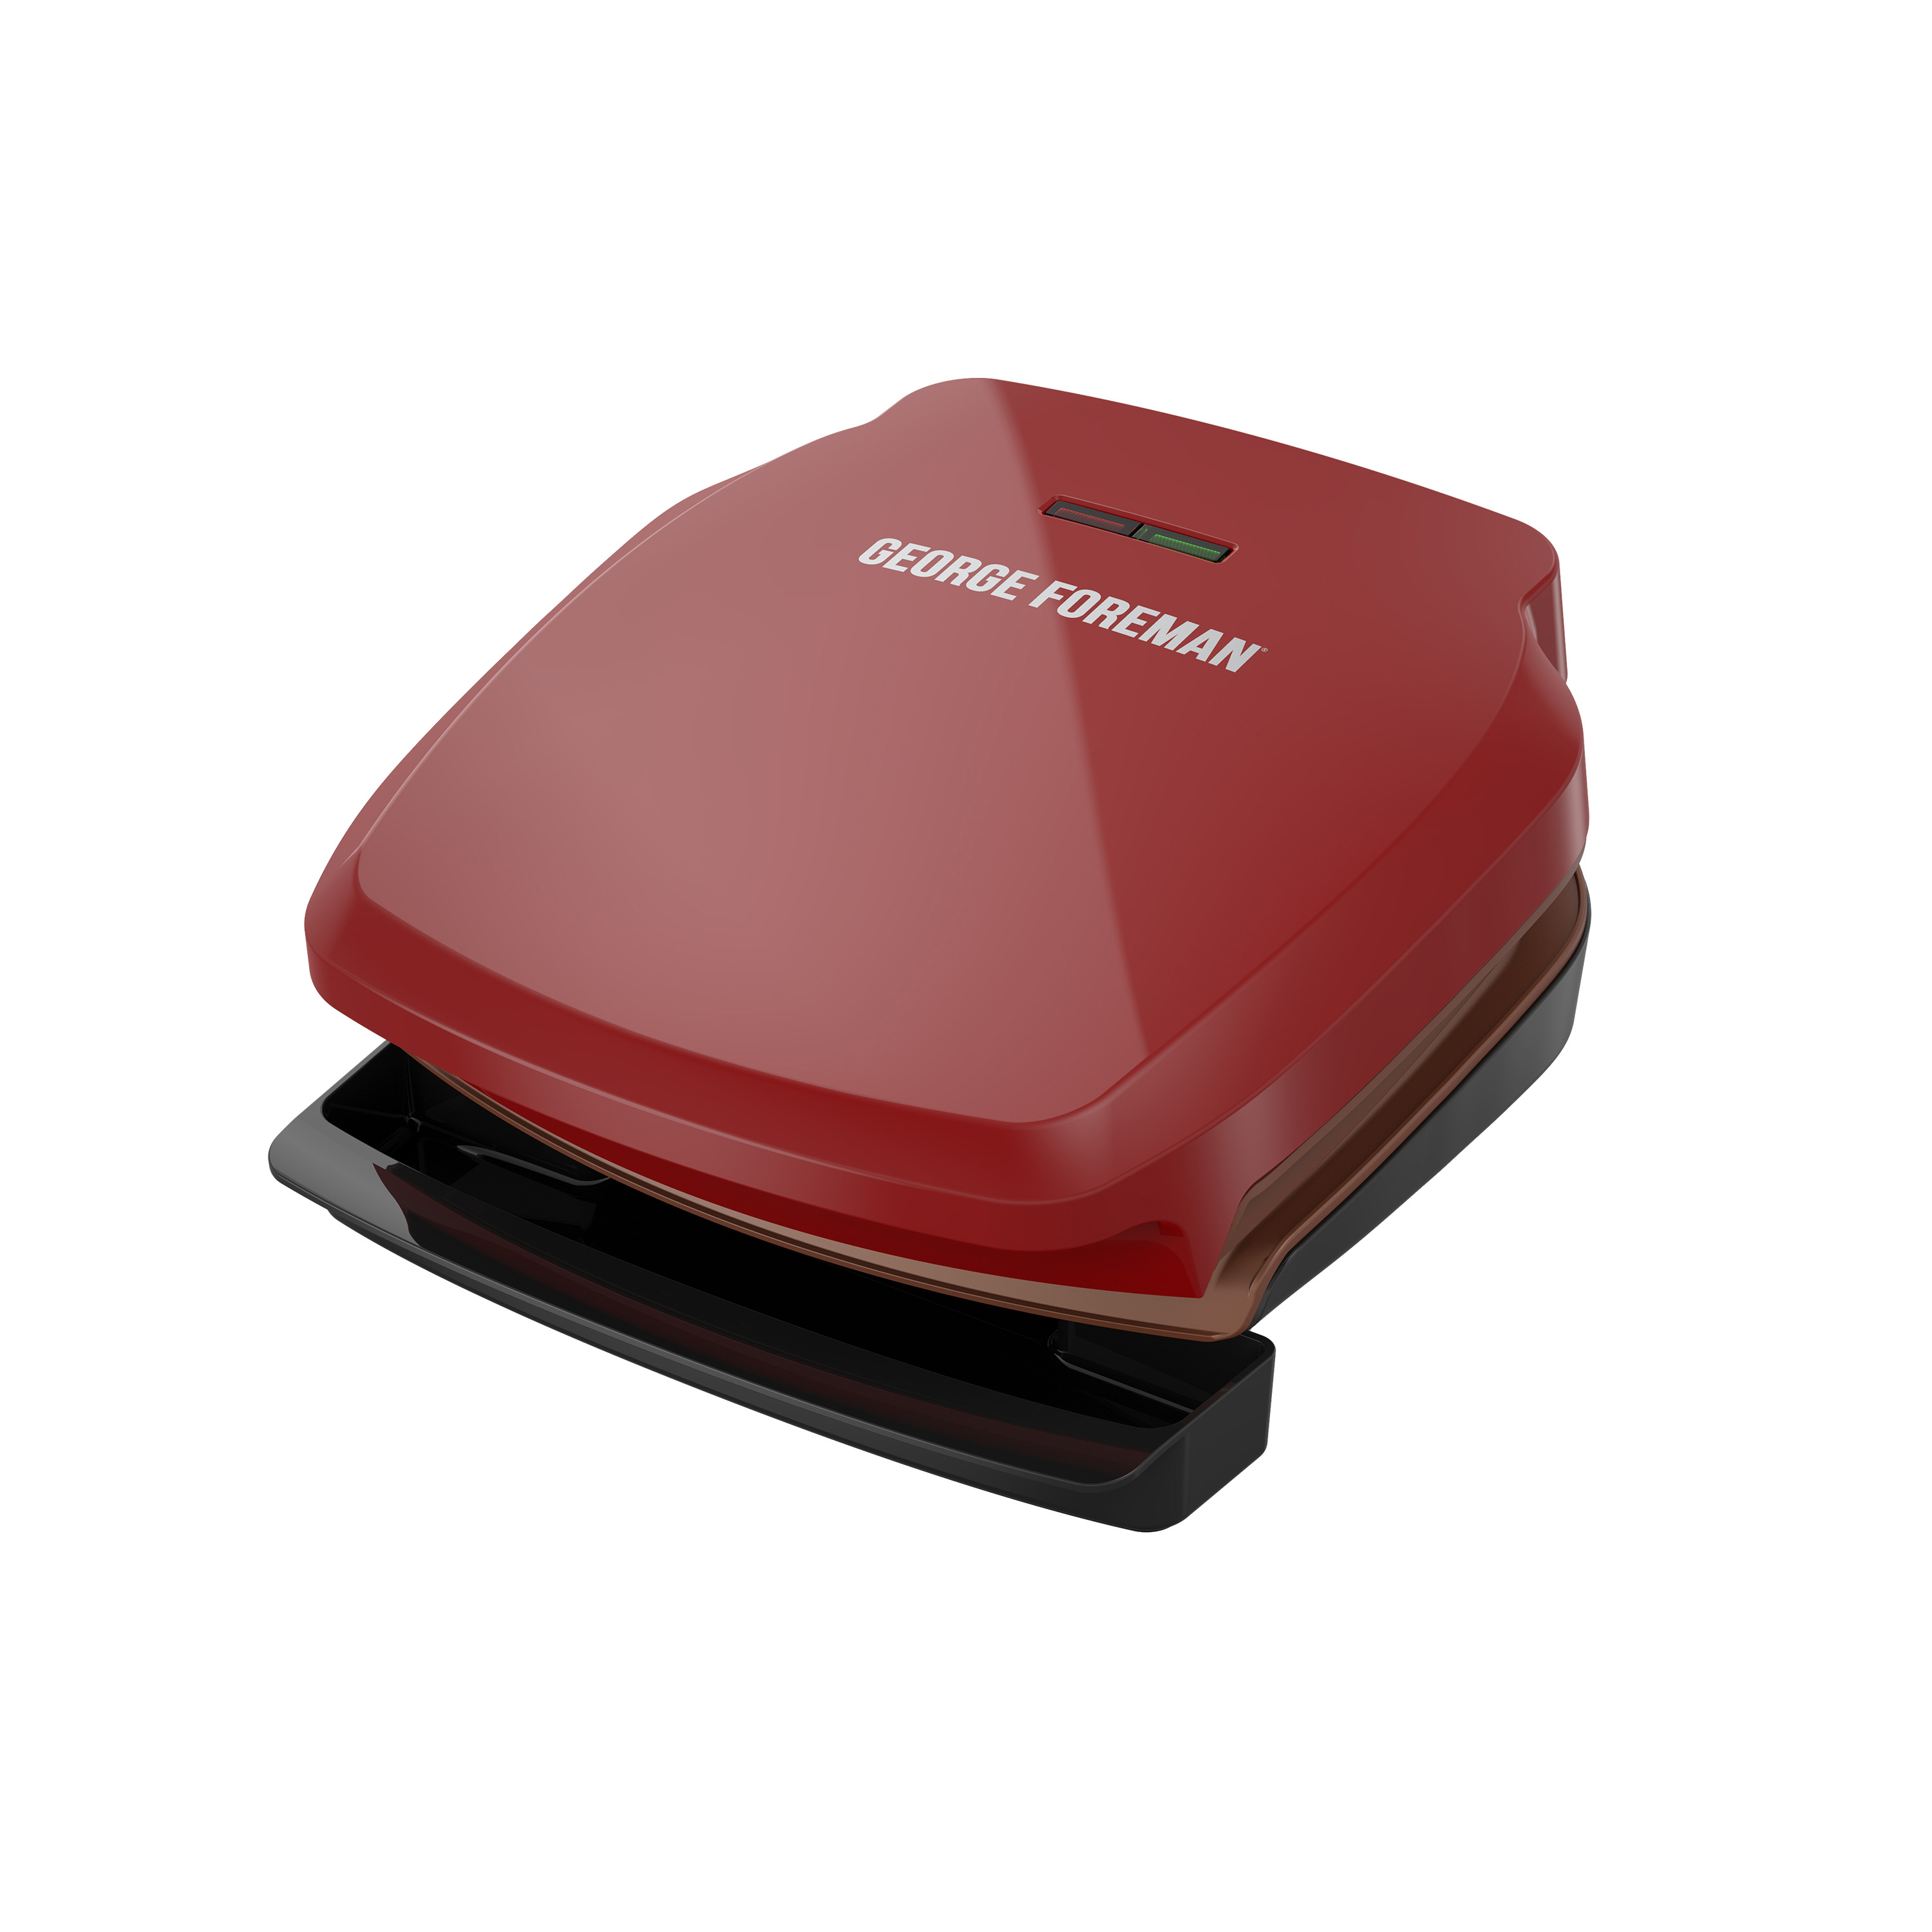 George Foreman 2-Serving Copper Infused Classic Plate Electric Indoor Grill and Panini Press, Red, GR320FRC-HP